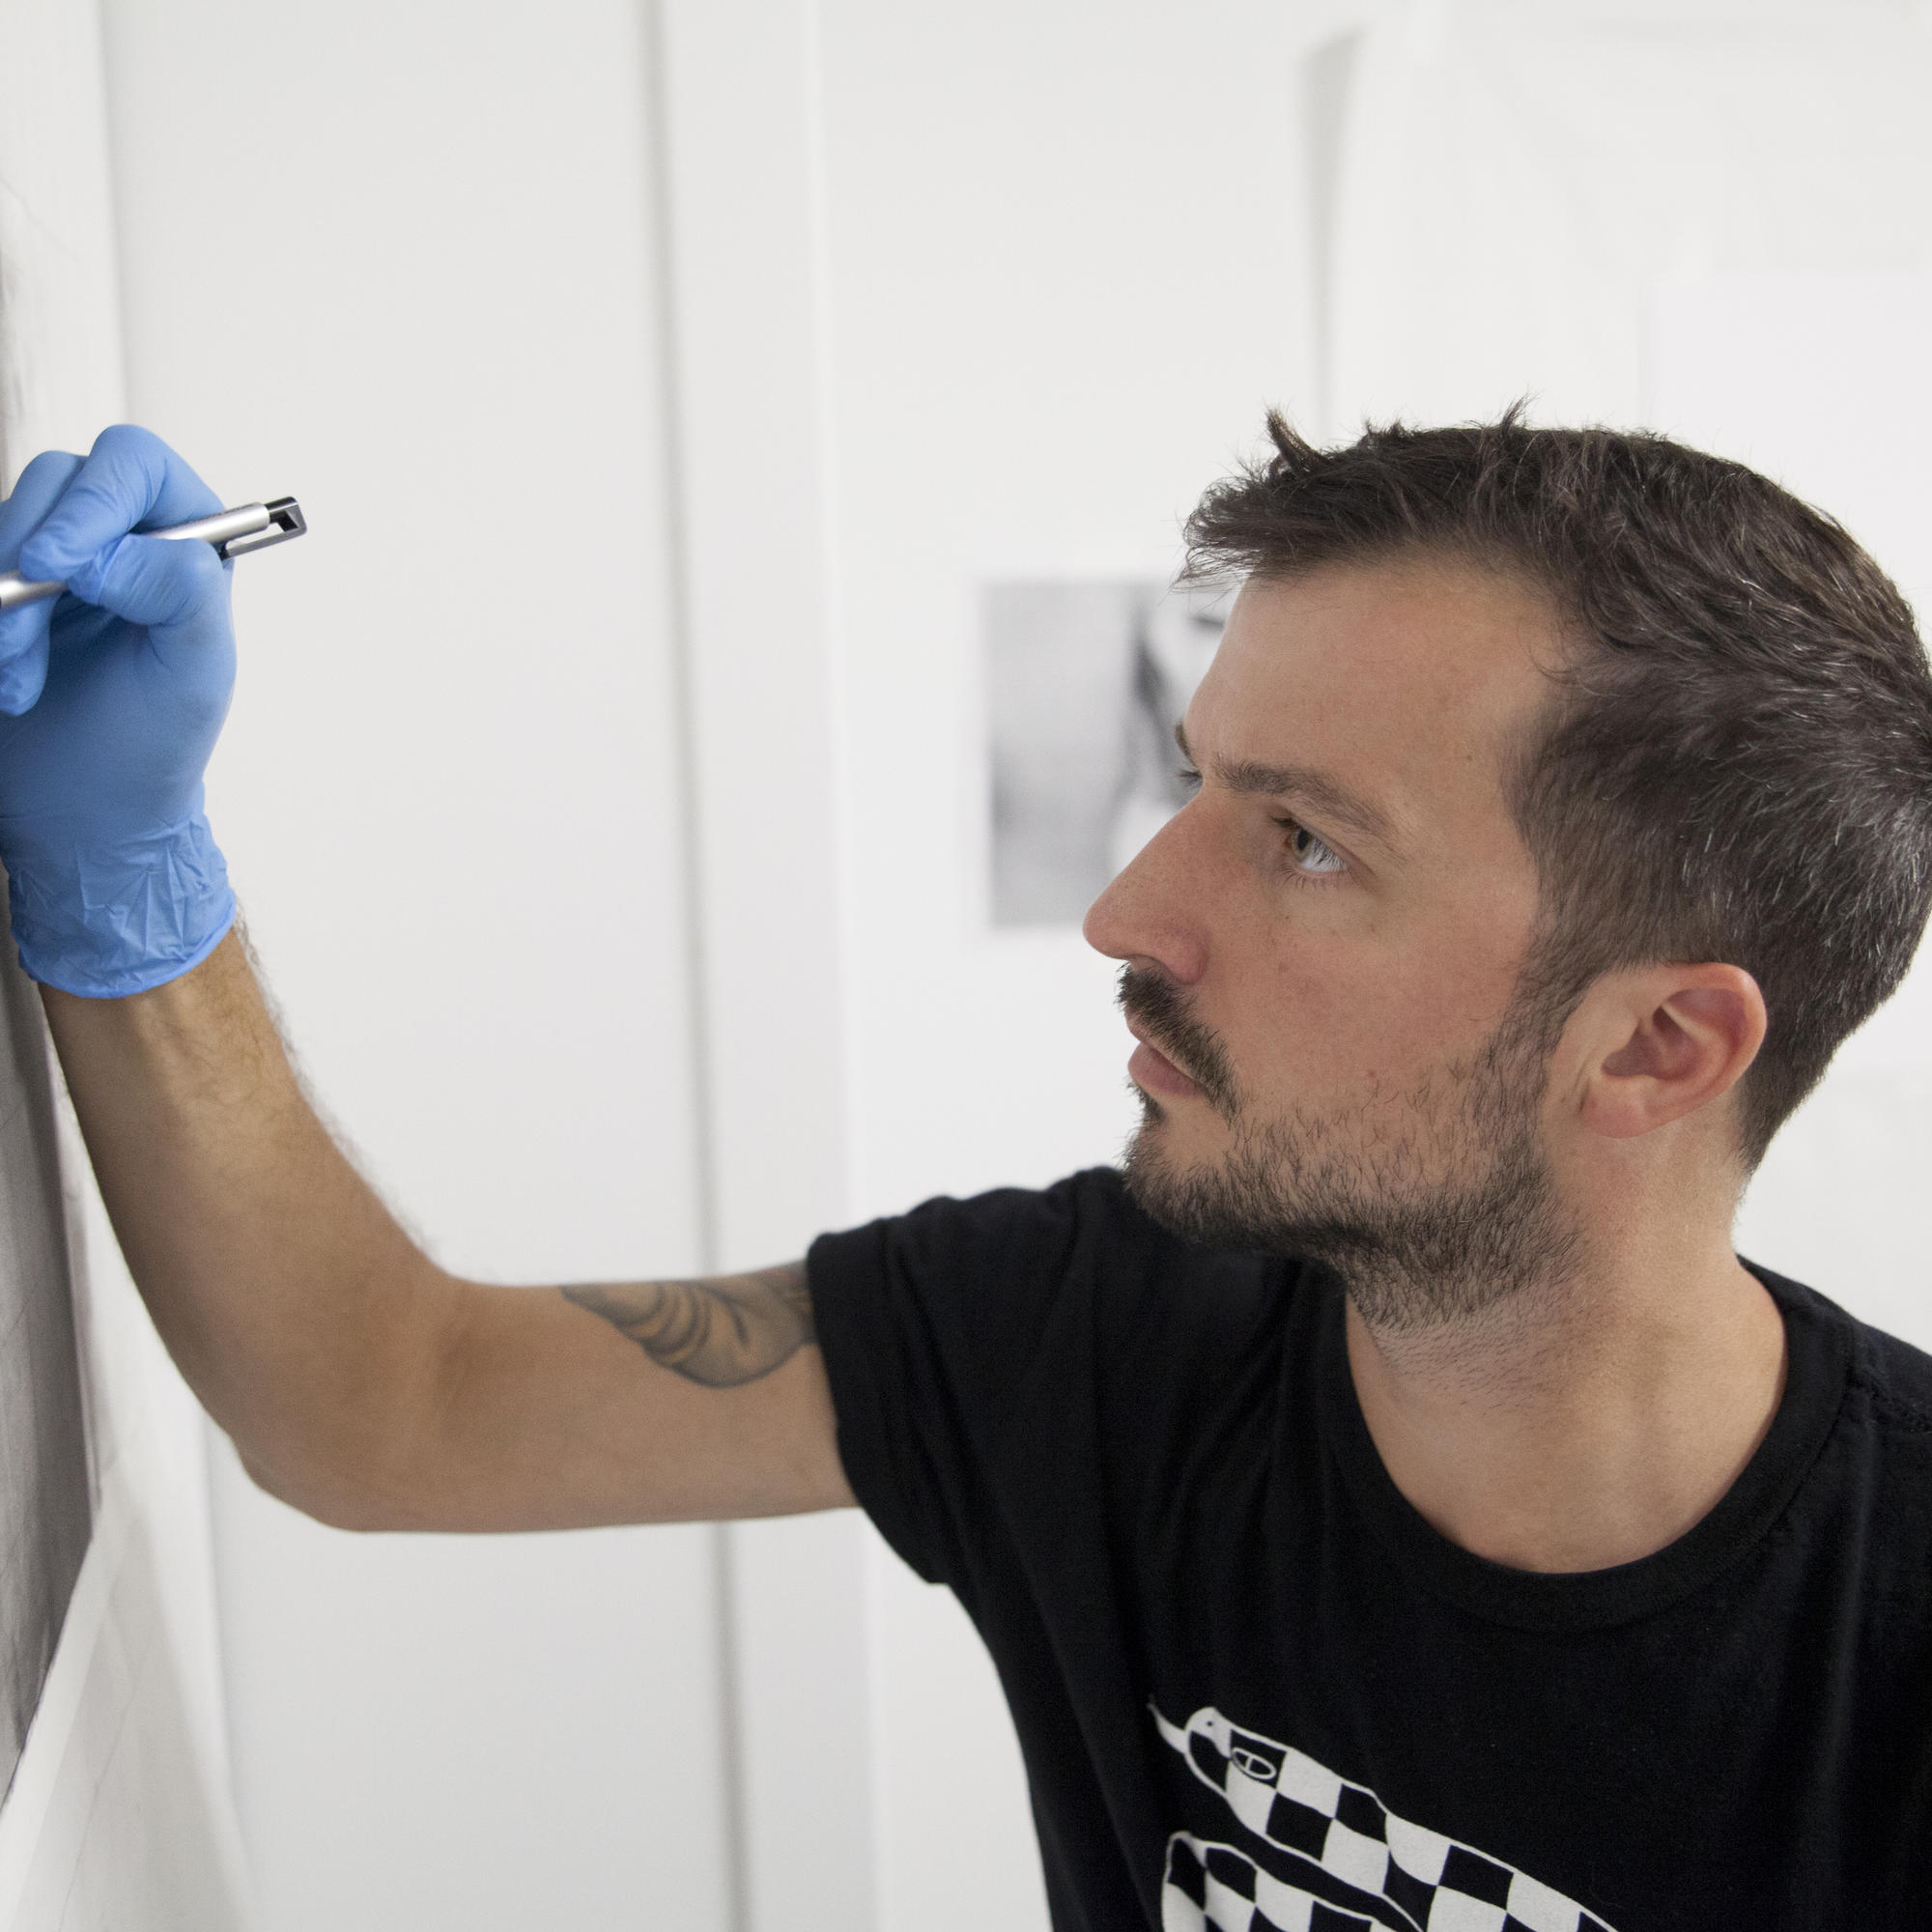 person drawing on a vertical surface